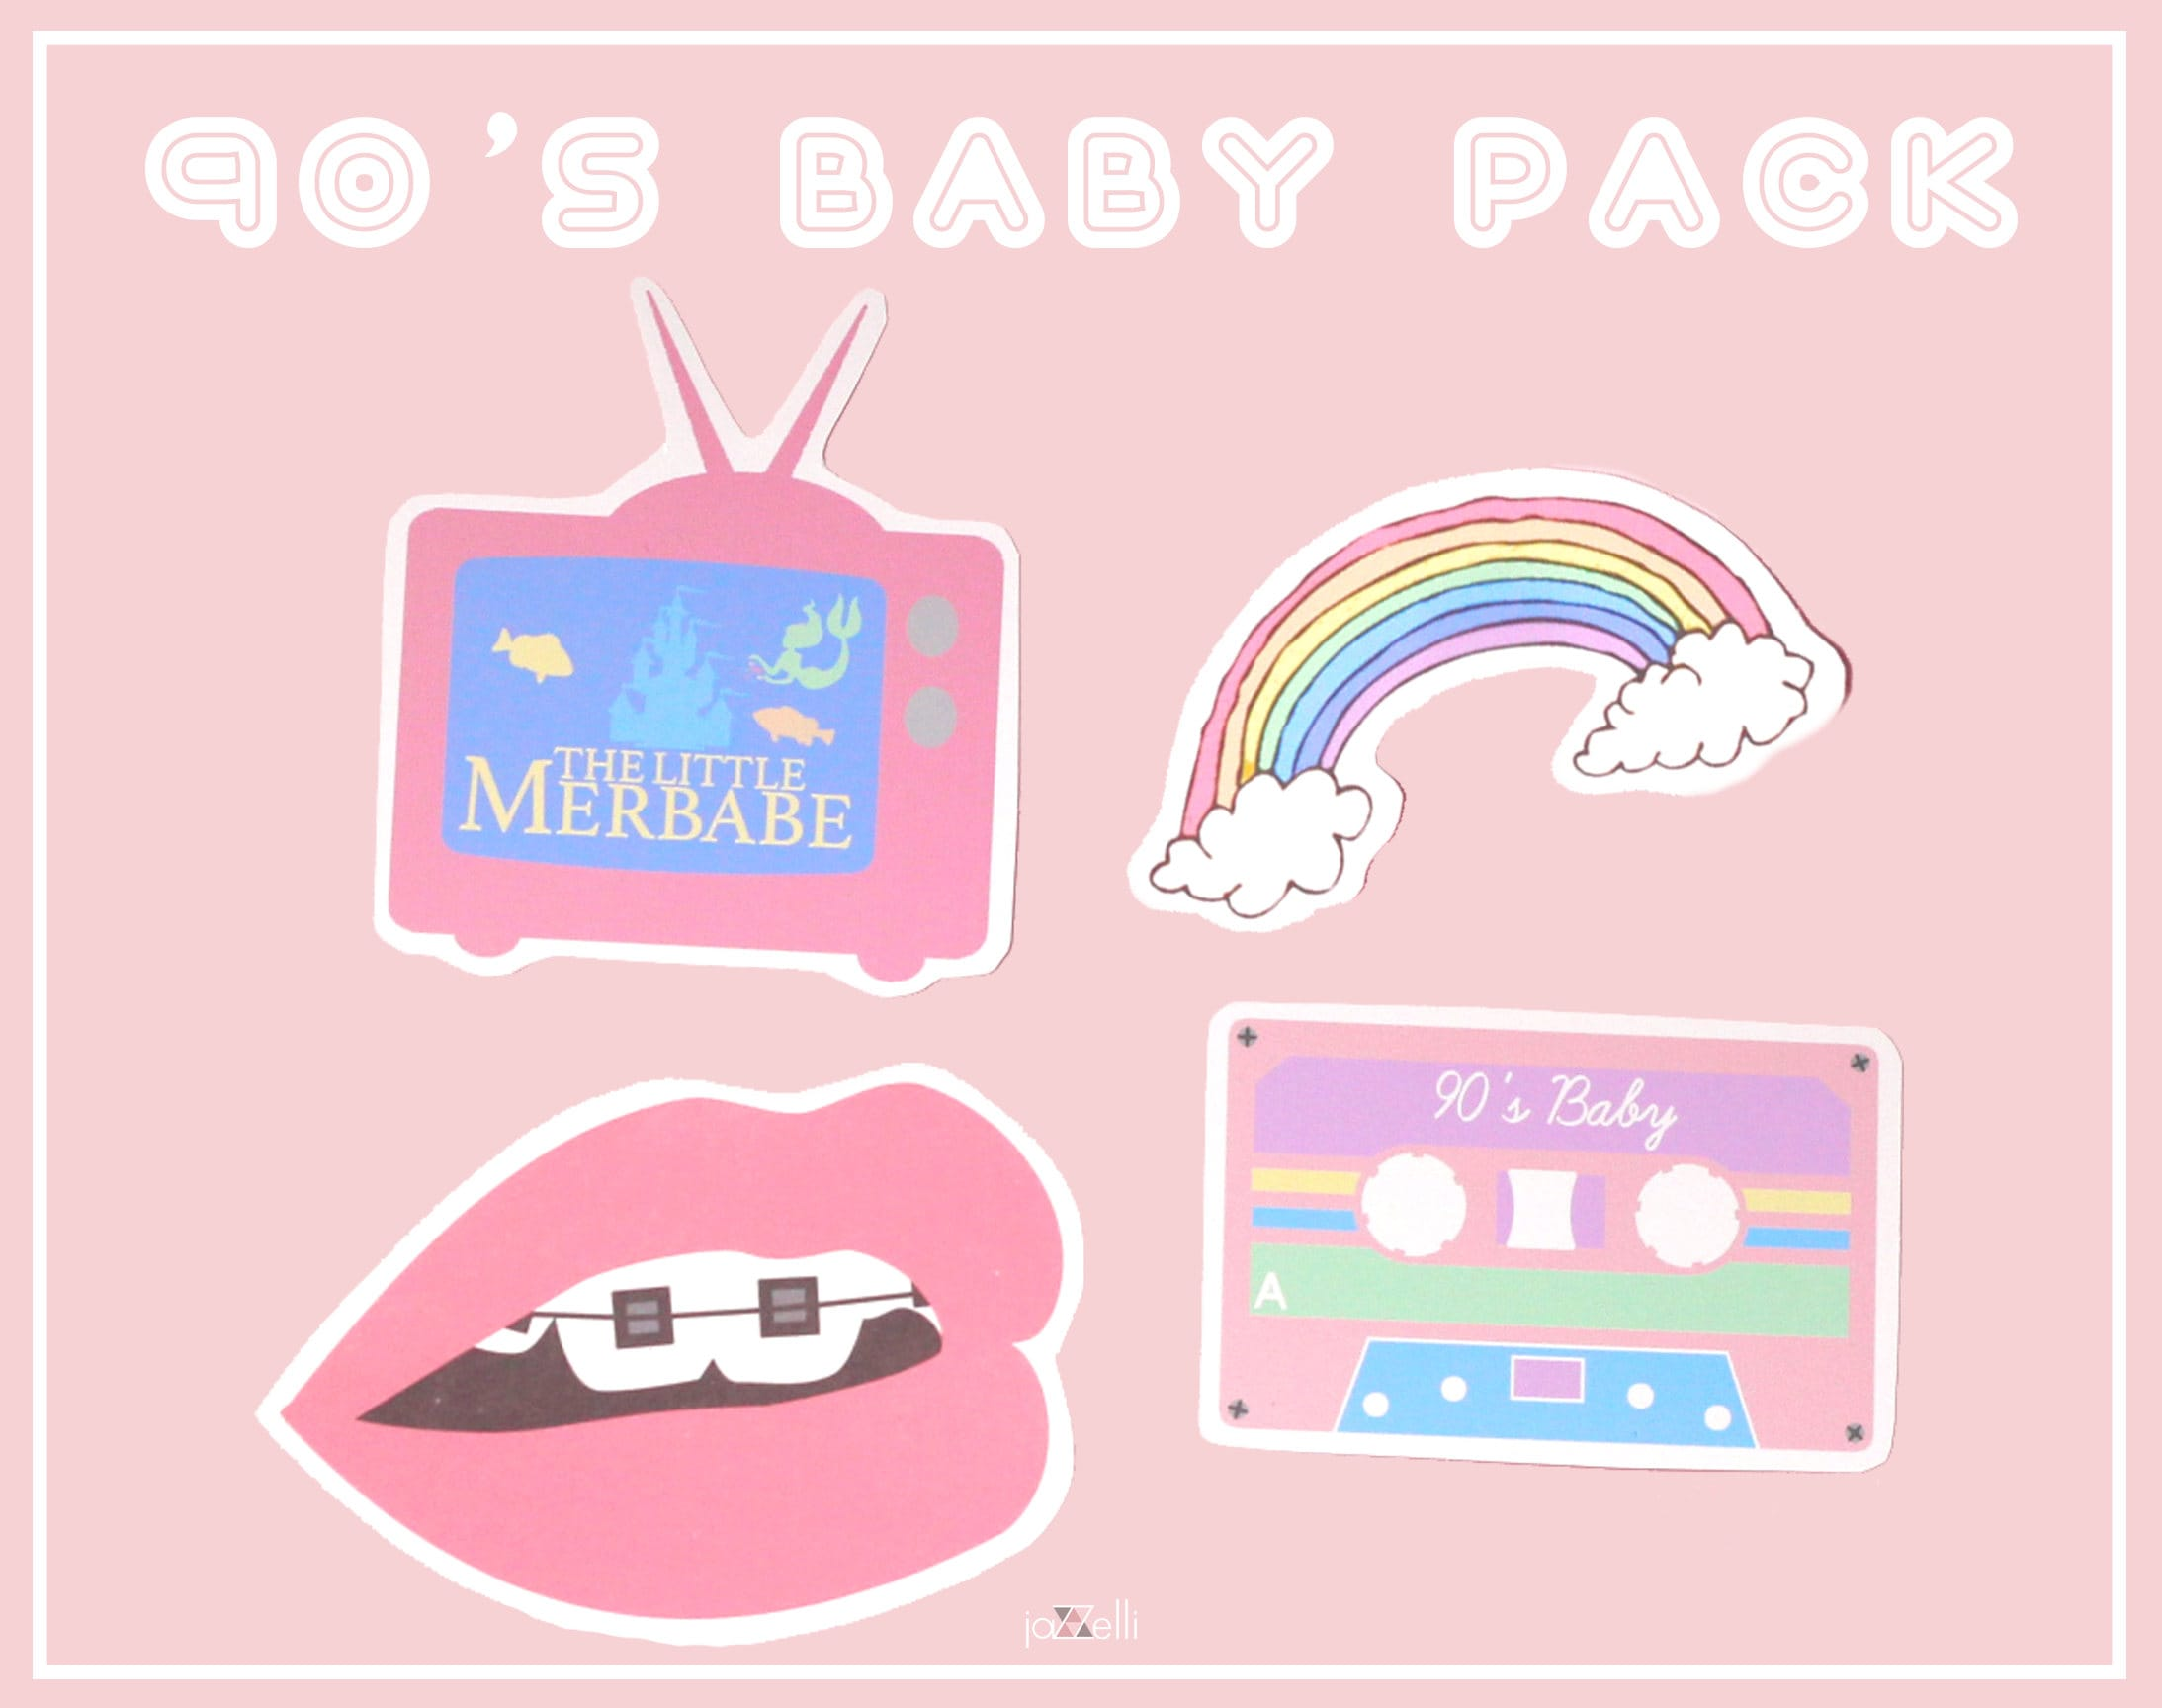 Name Stickers For Walls 90 S Baby Sticker Pack Cute Stickers Tumblr Stickers